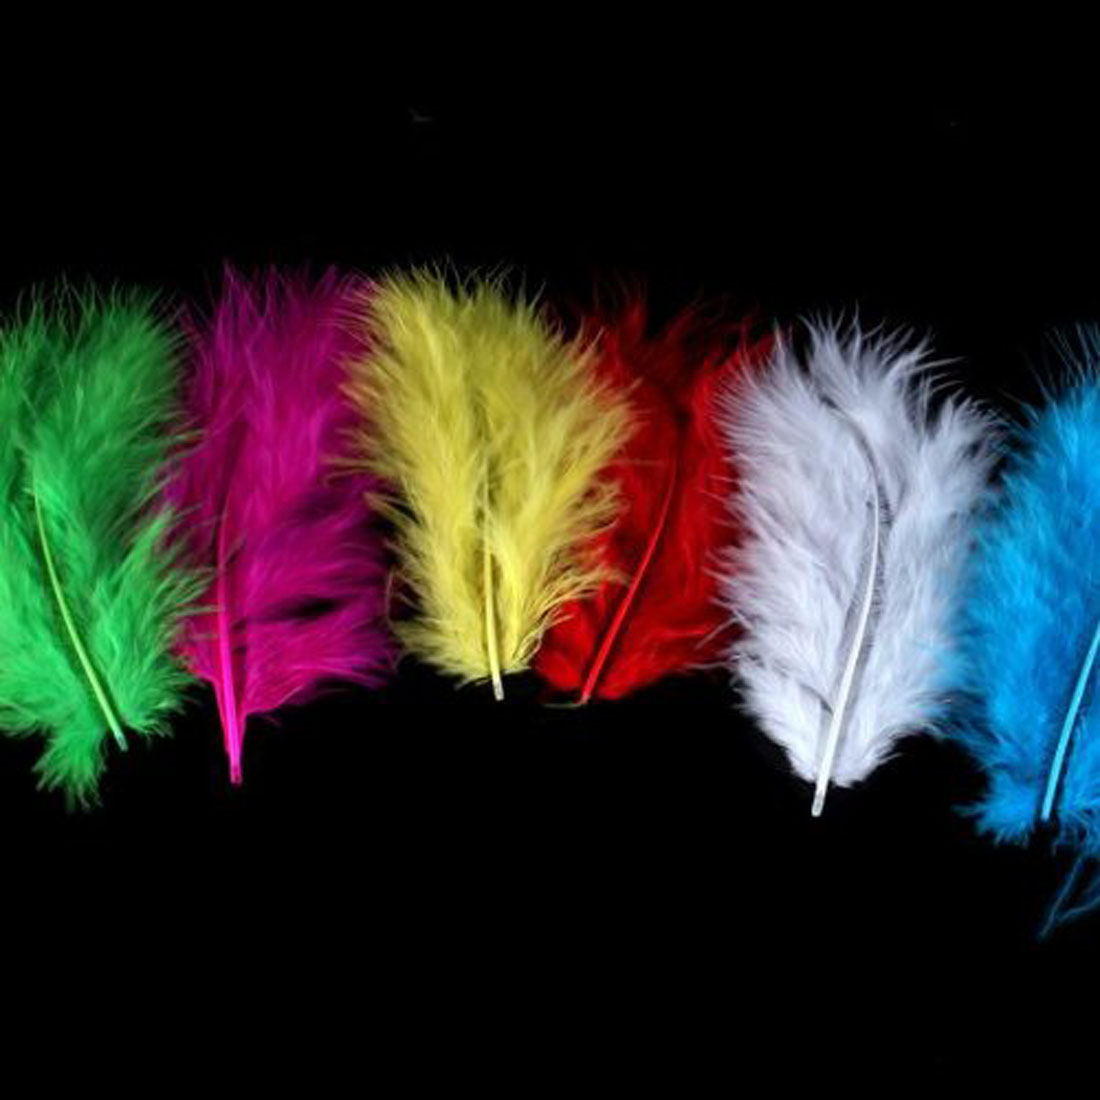 New Arrival 120pcs/set Assorted Color Pretty Feather Short Chicken Turkey Plume Plumage Free Shipping